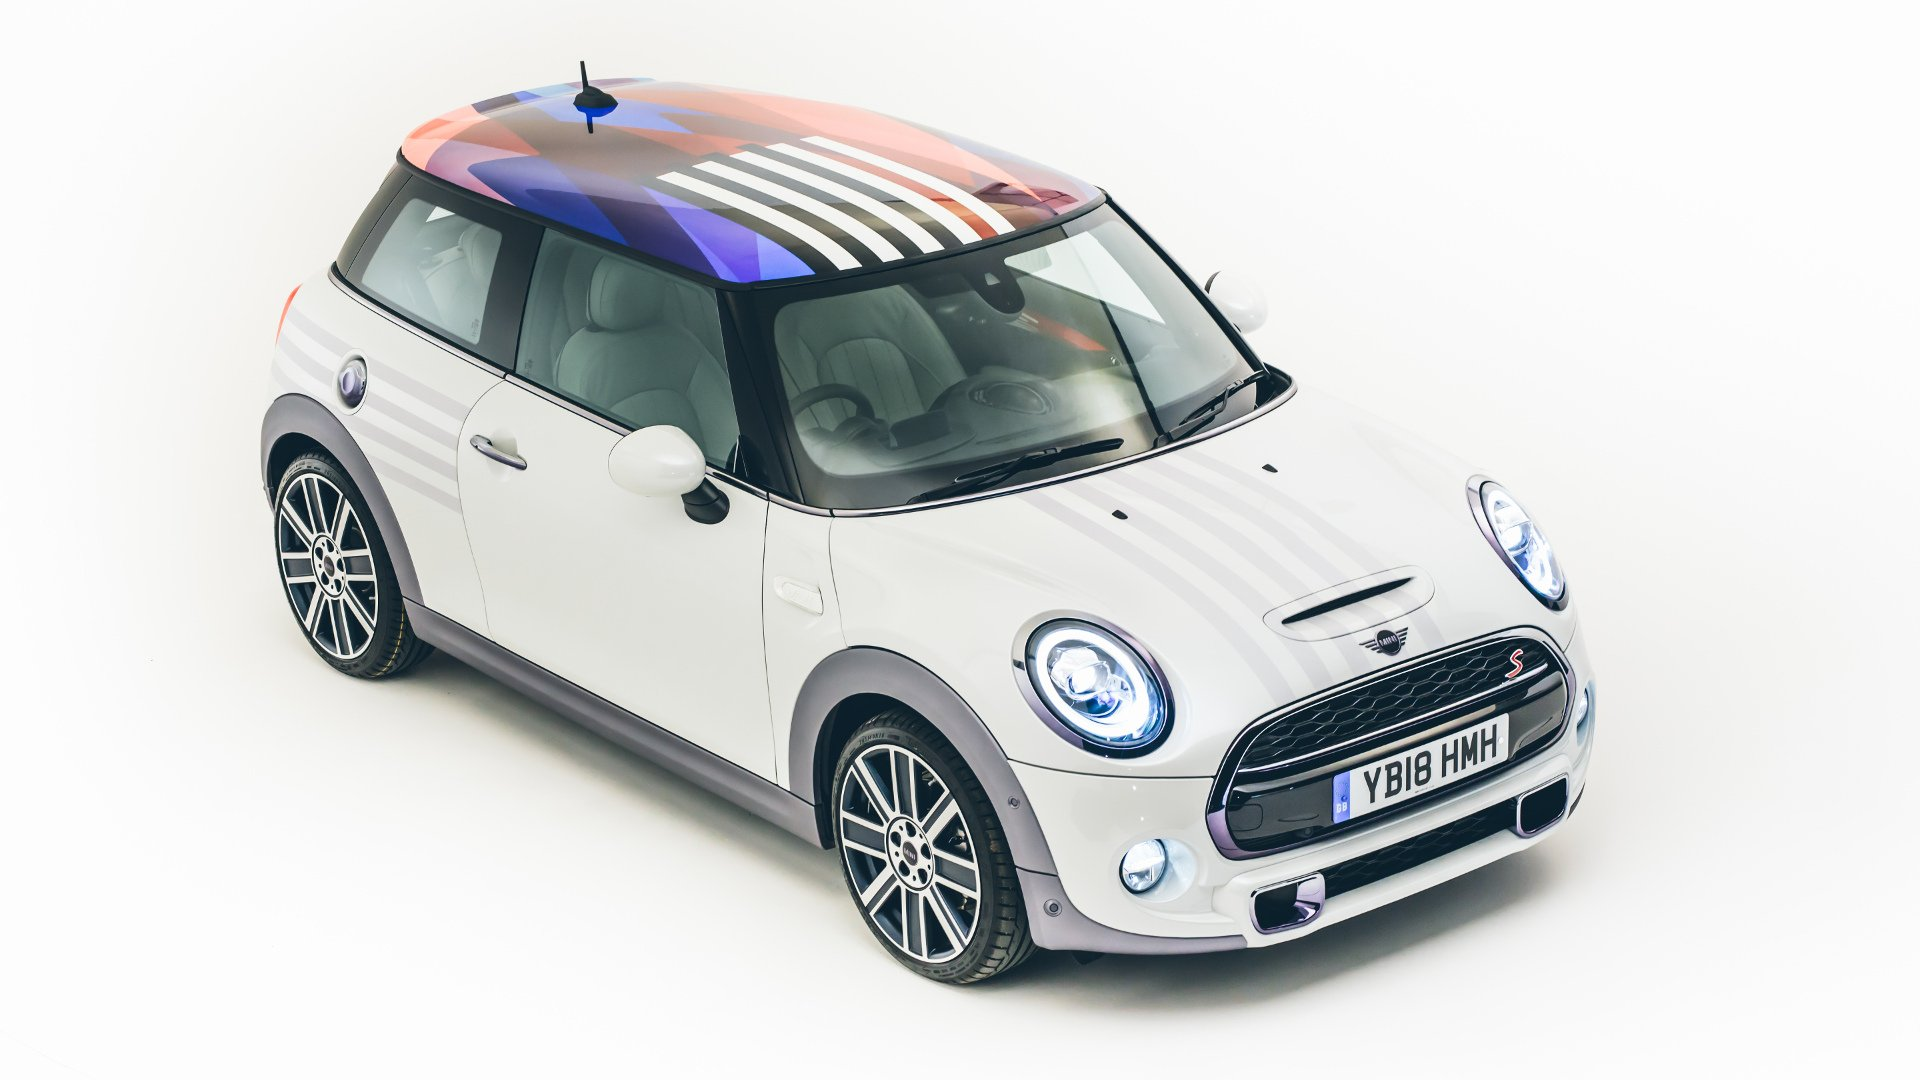 BMW Mini Commemorates Royal Wedding with Unique Car Design | All3DP